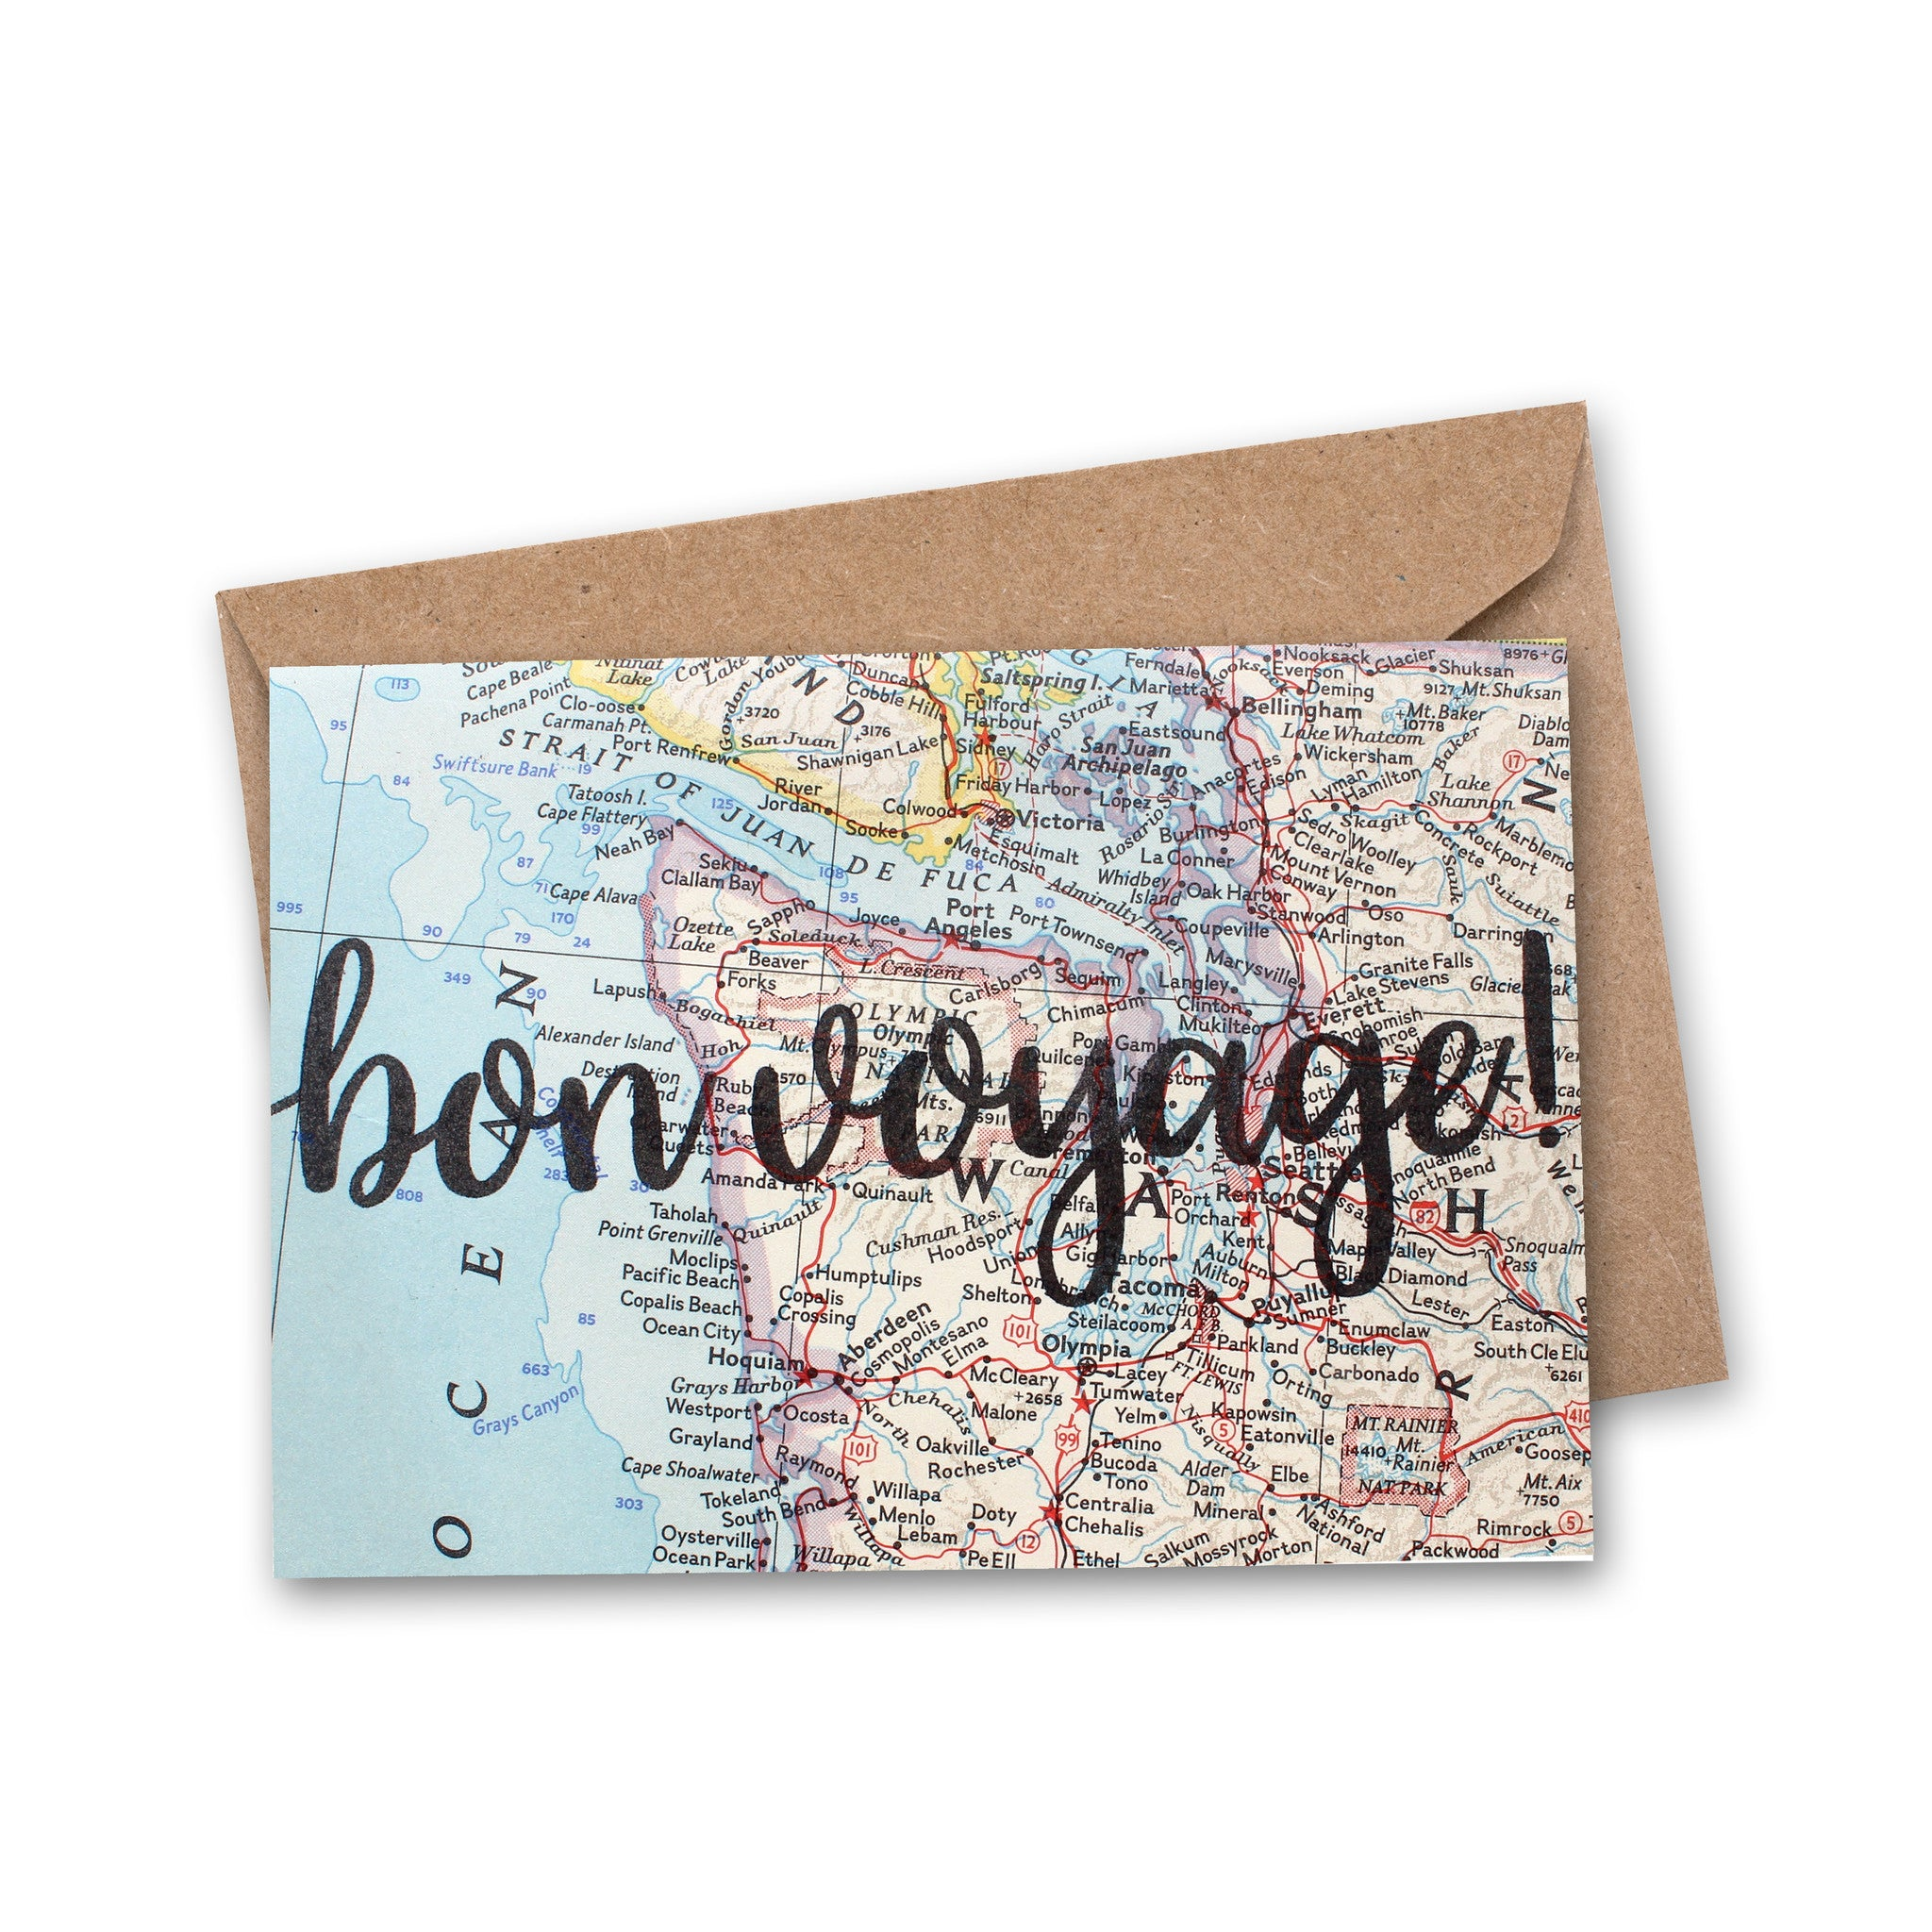 Bon voyage vintage map greeting card an adventure awaits bon voyage vintage map greeting card kristyandbryce Image collections